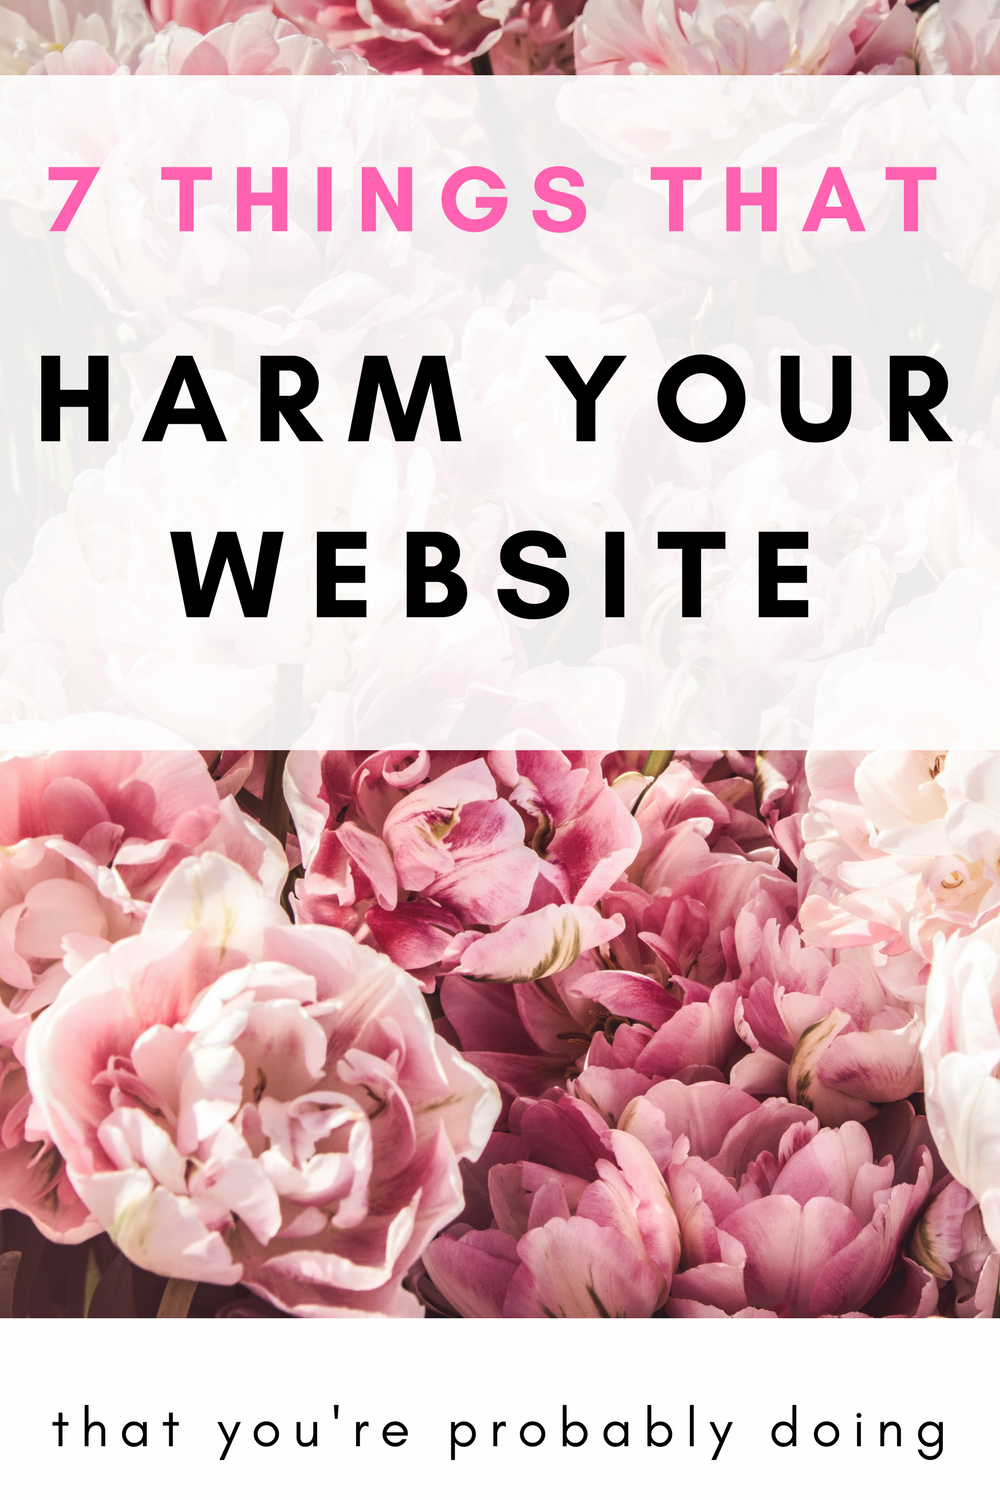 7 things that harm your website